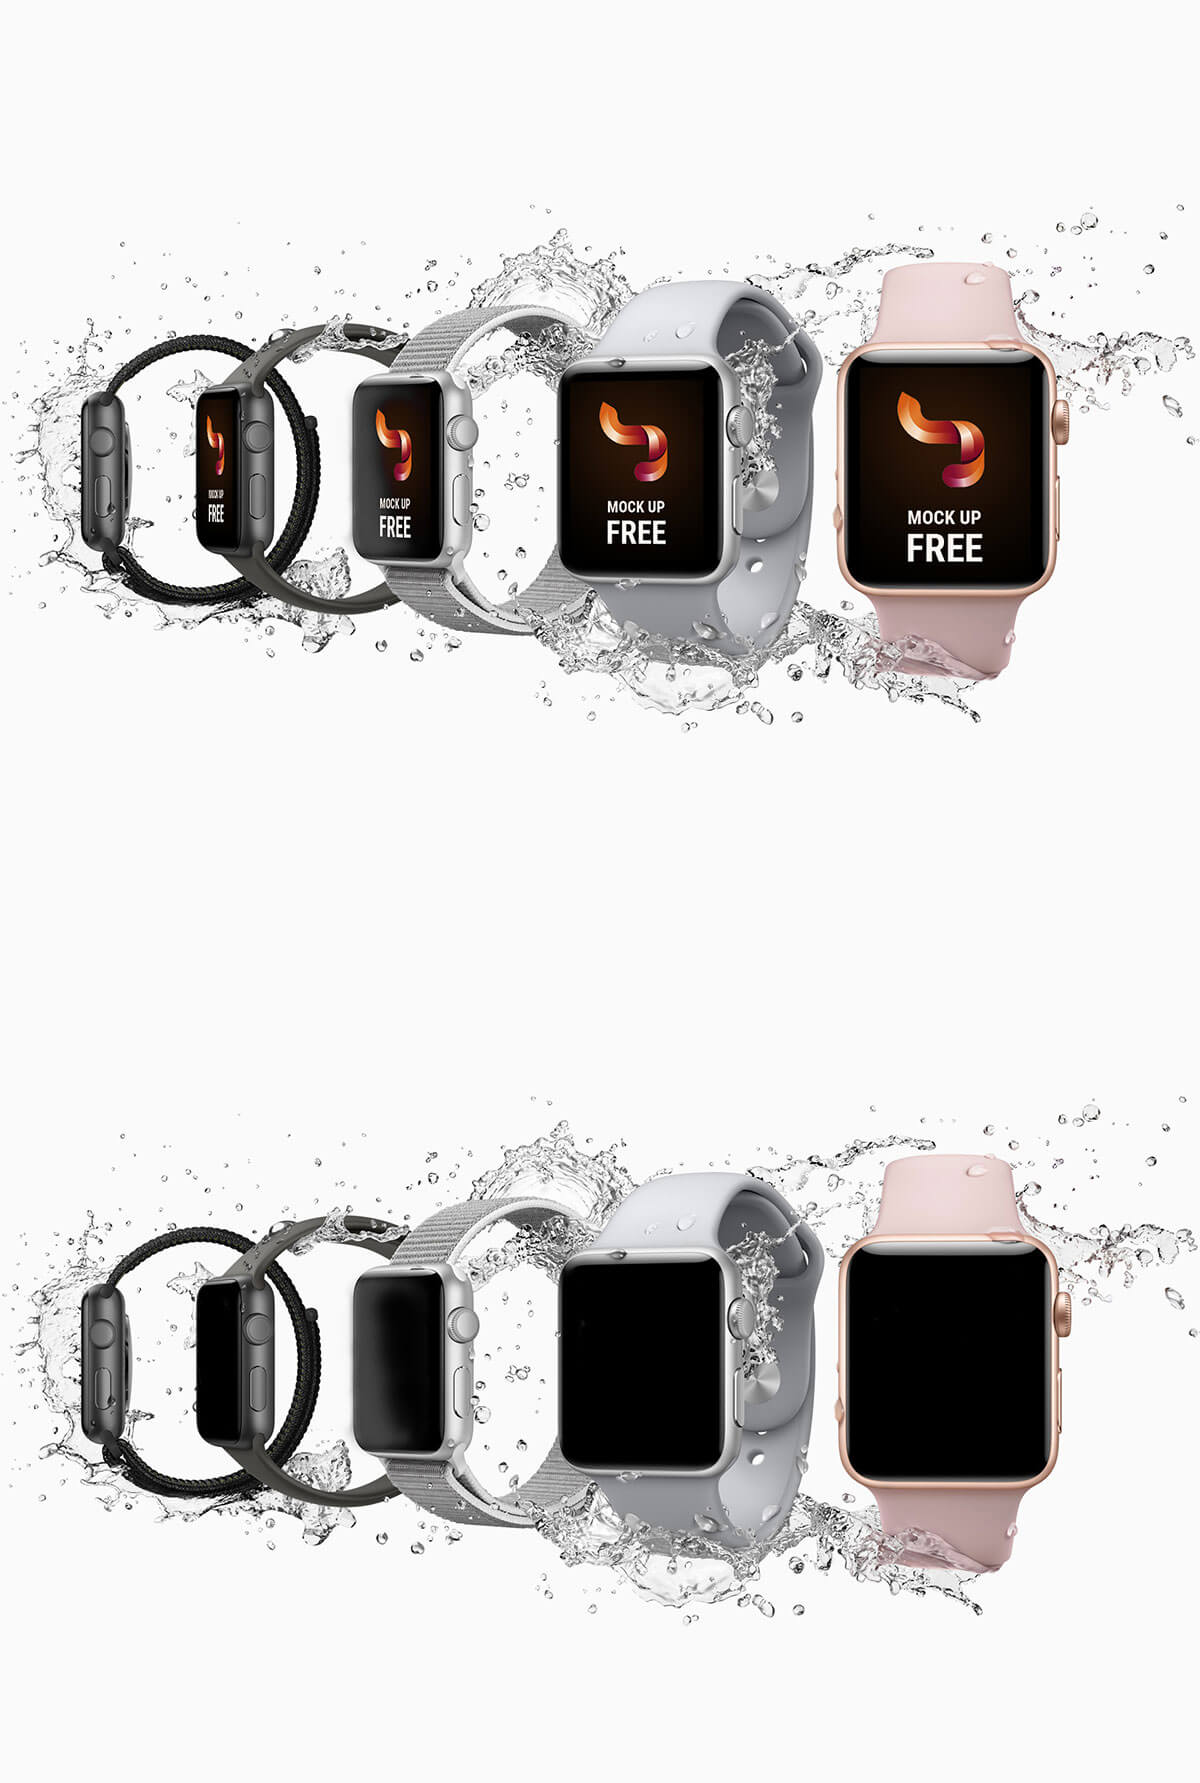 Free Apple Watch Mockup